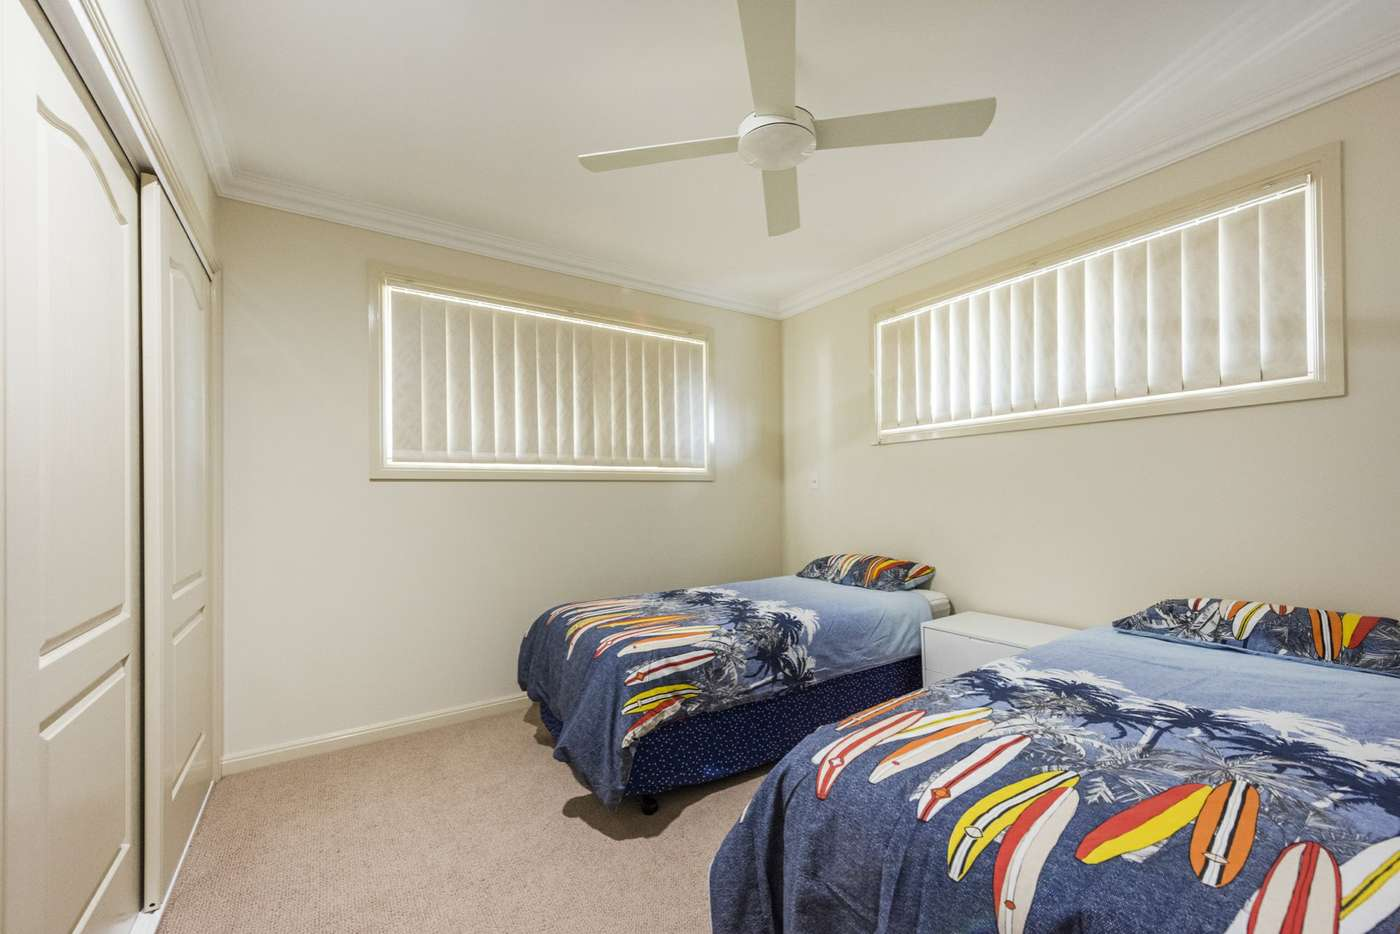 Seventh view of Homely house listing, 35 Owen Street, Iluka NSW 2466